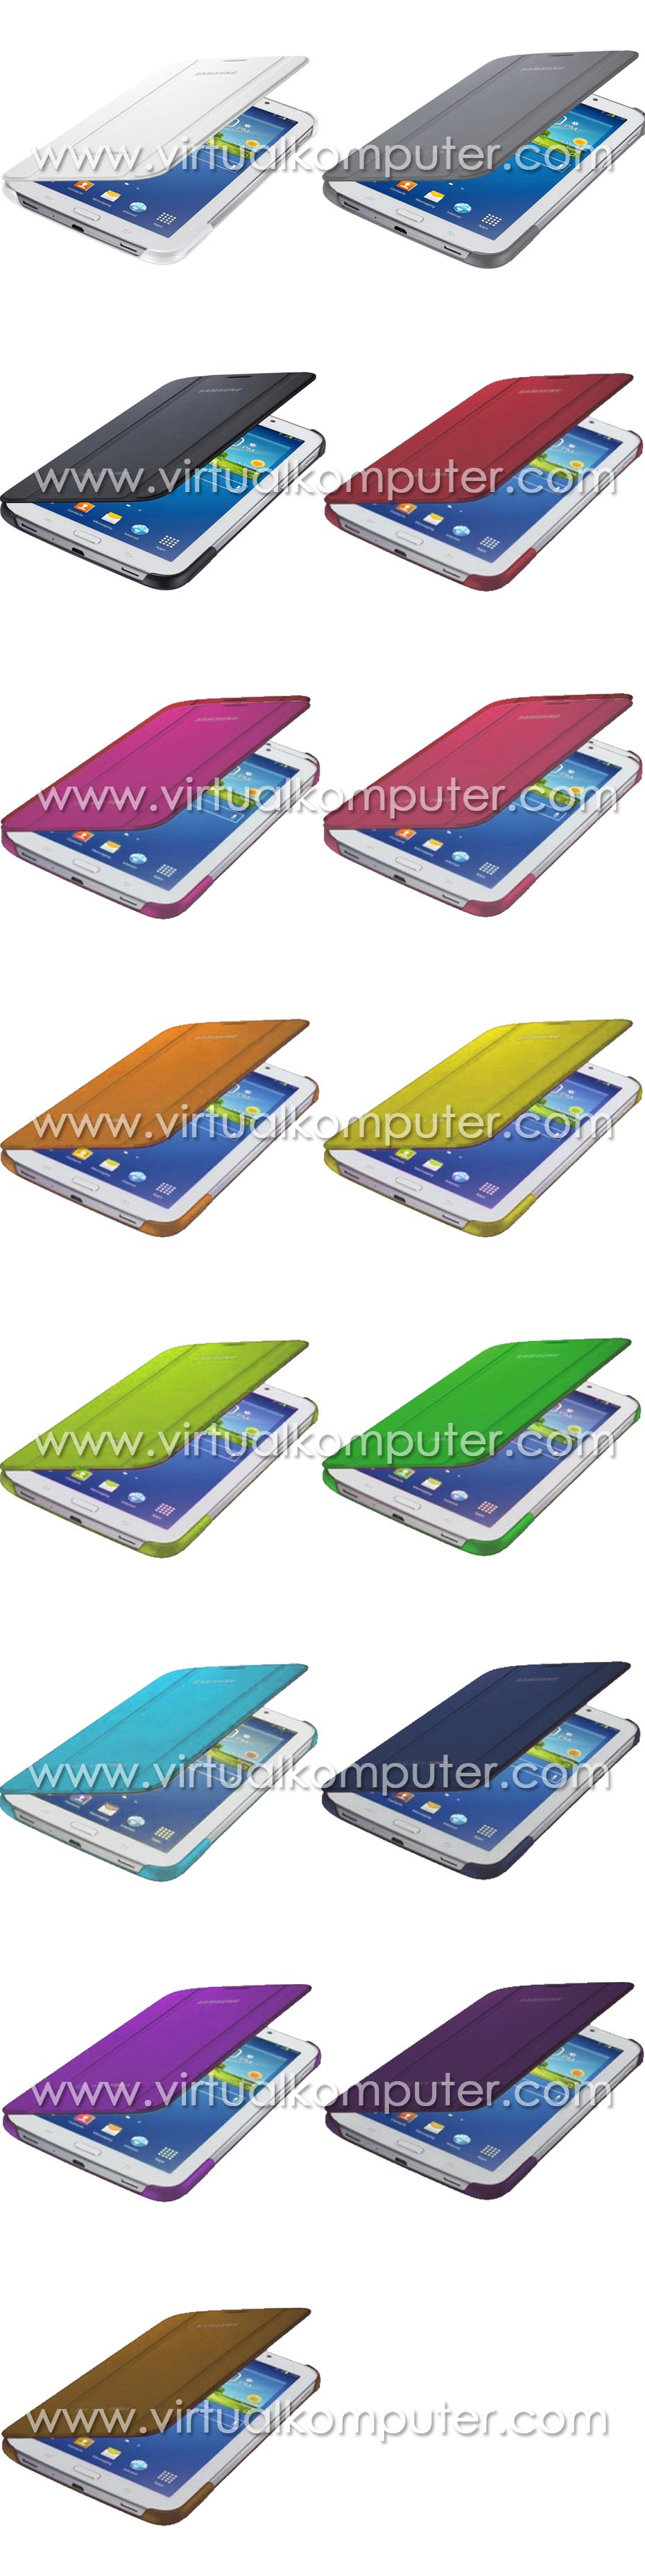 Book Cover Case Stand for Samsung Galaxy Tab3 7.0 P3200 Overview